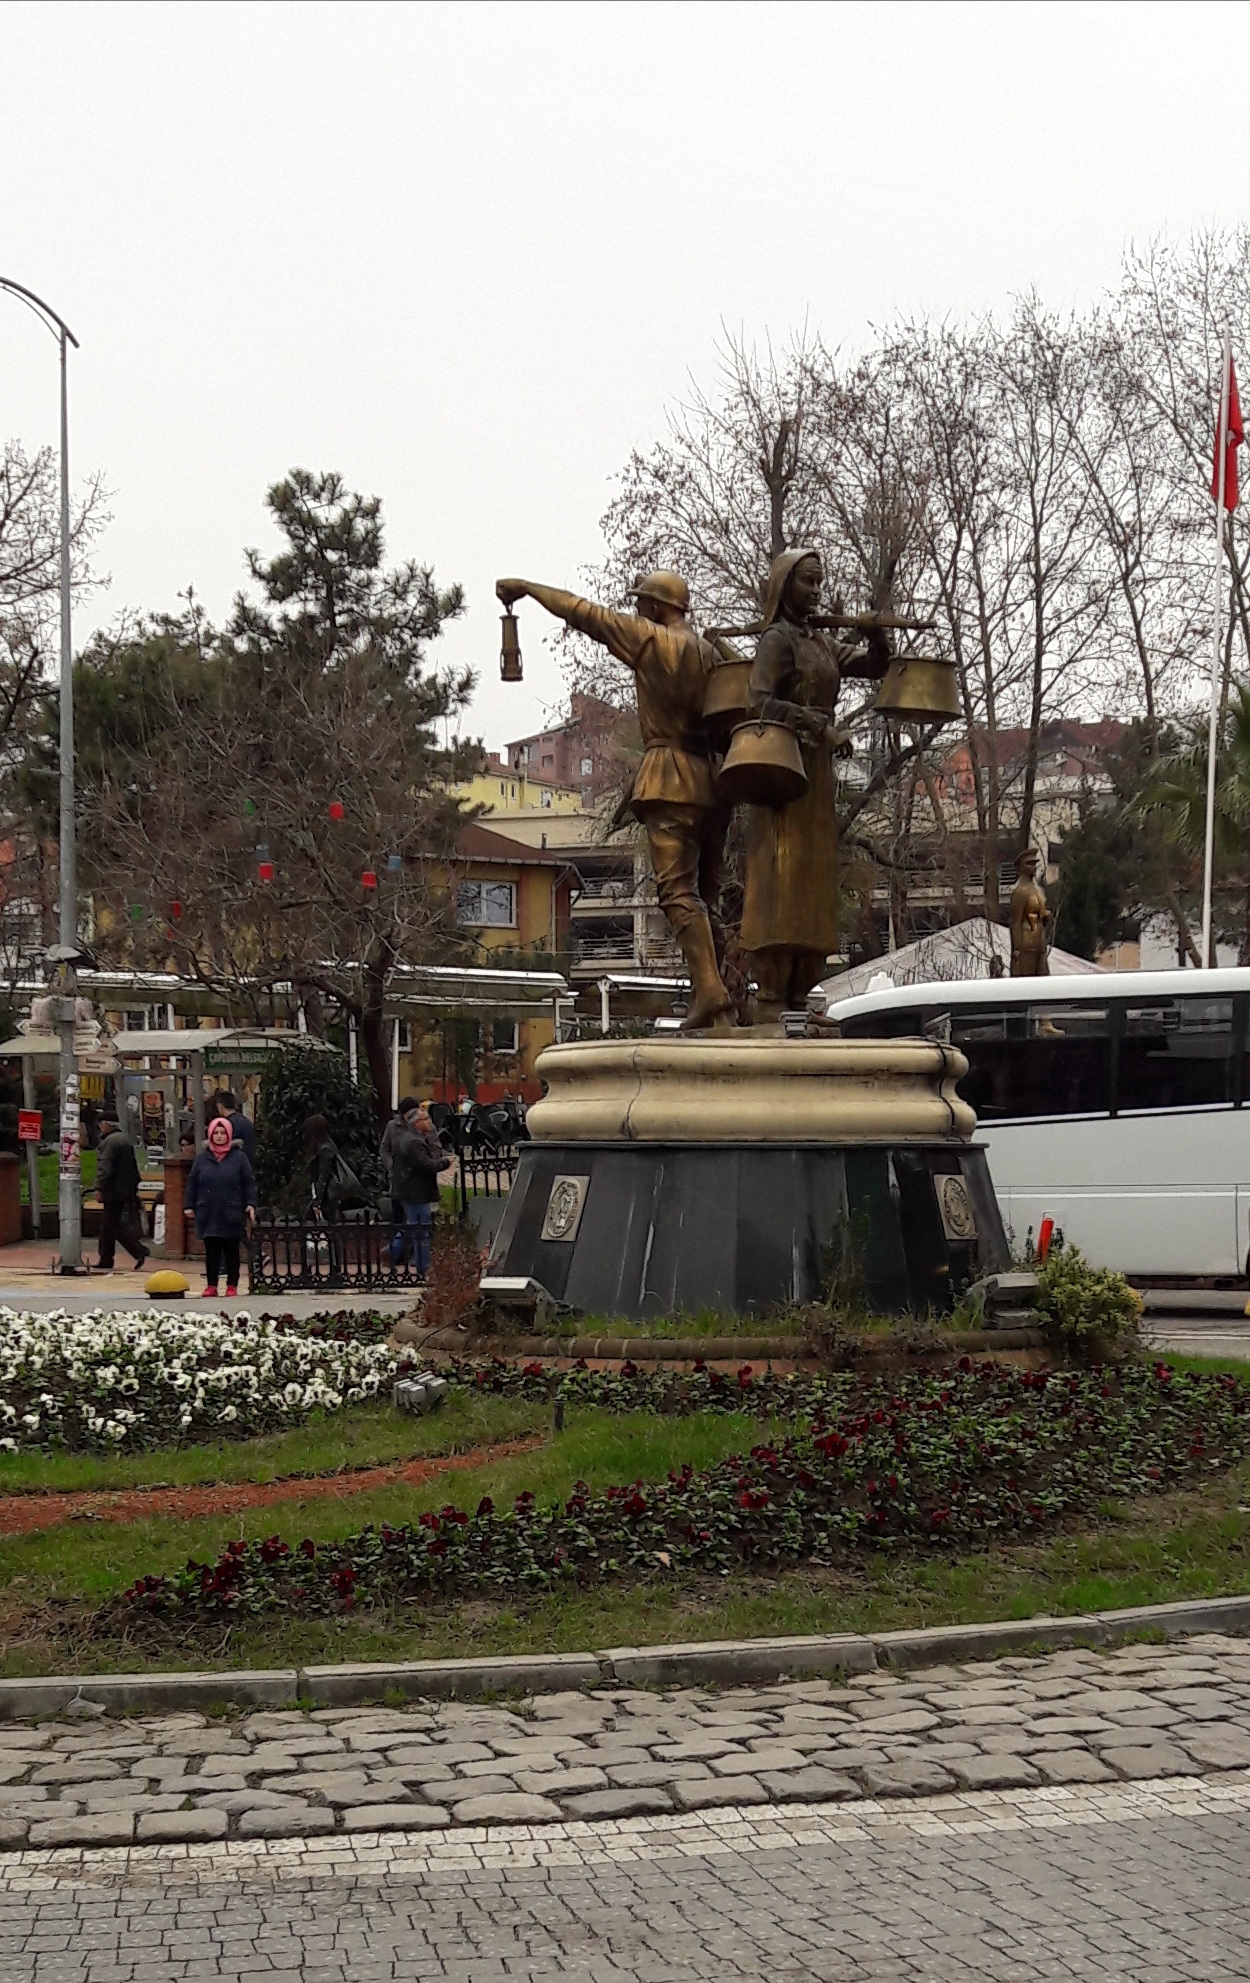 The statuary reminds us to the hard working people